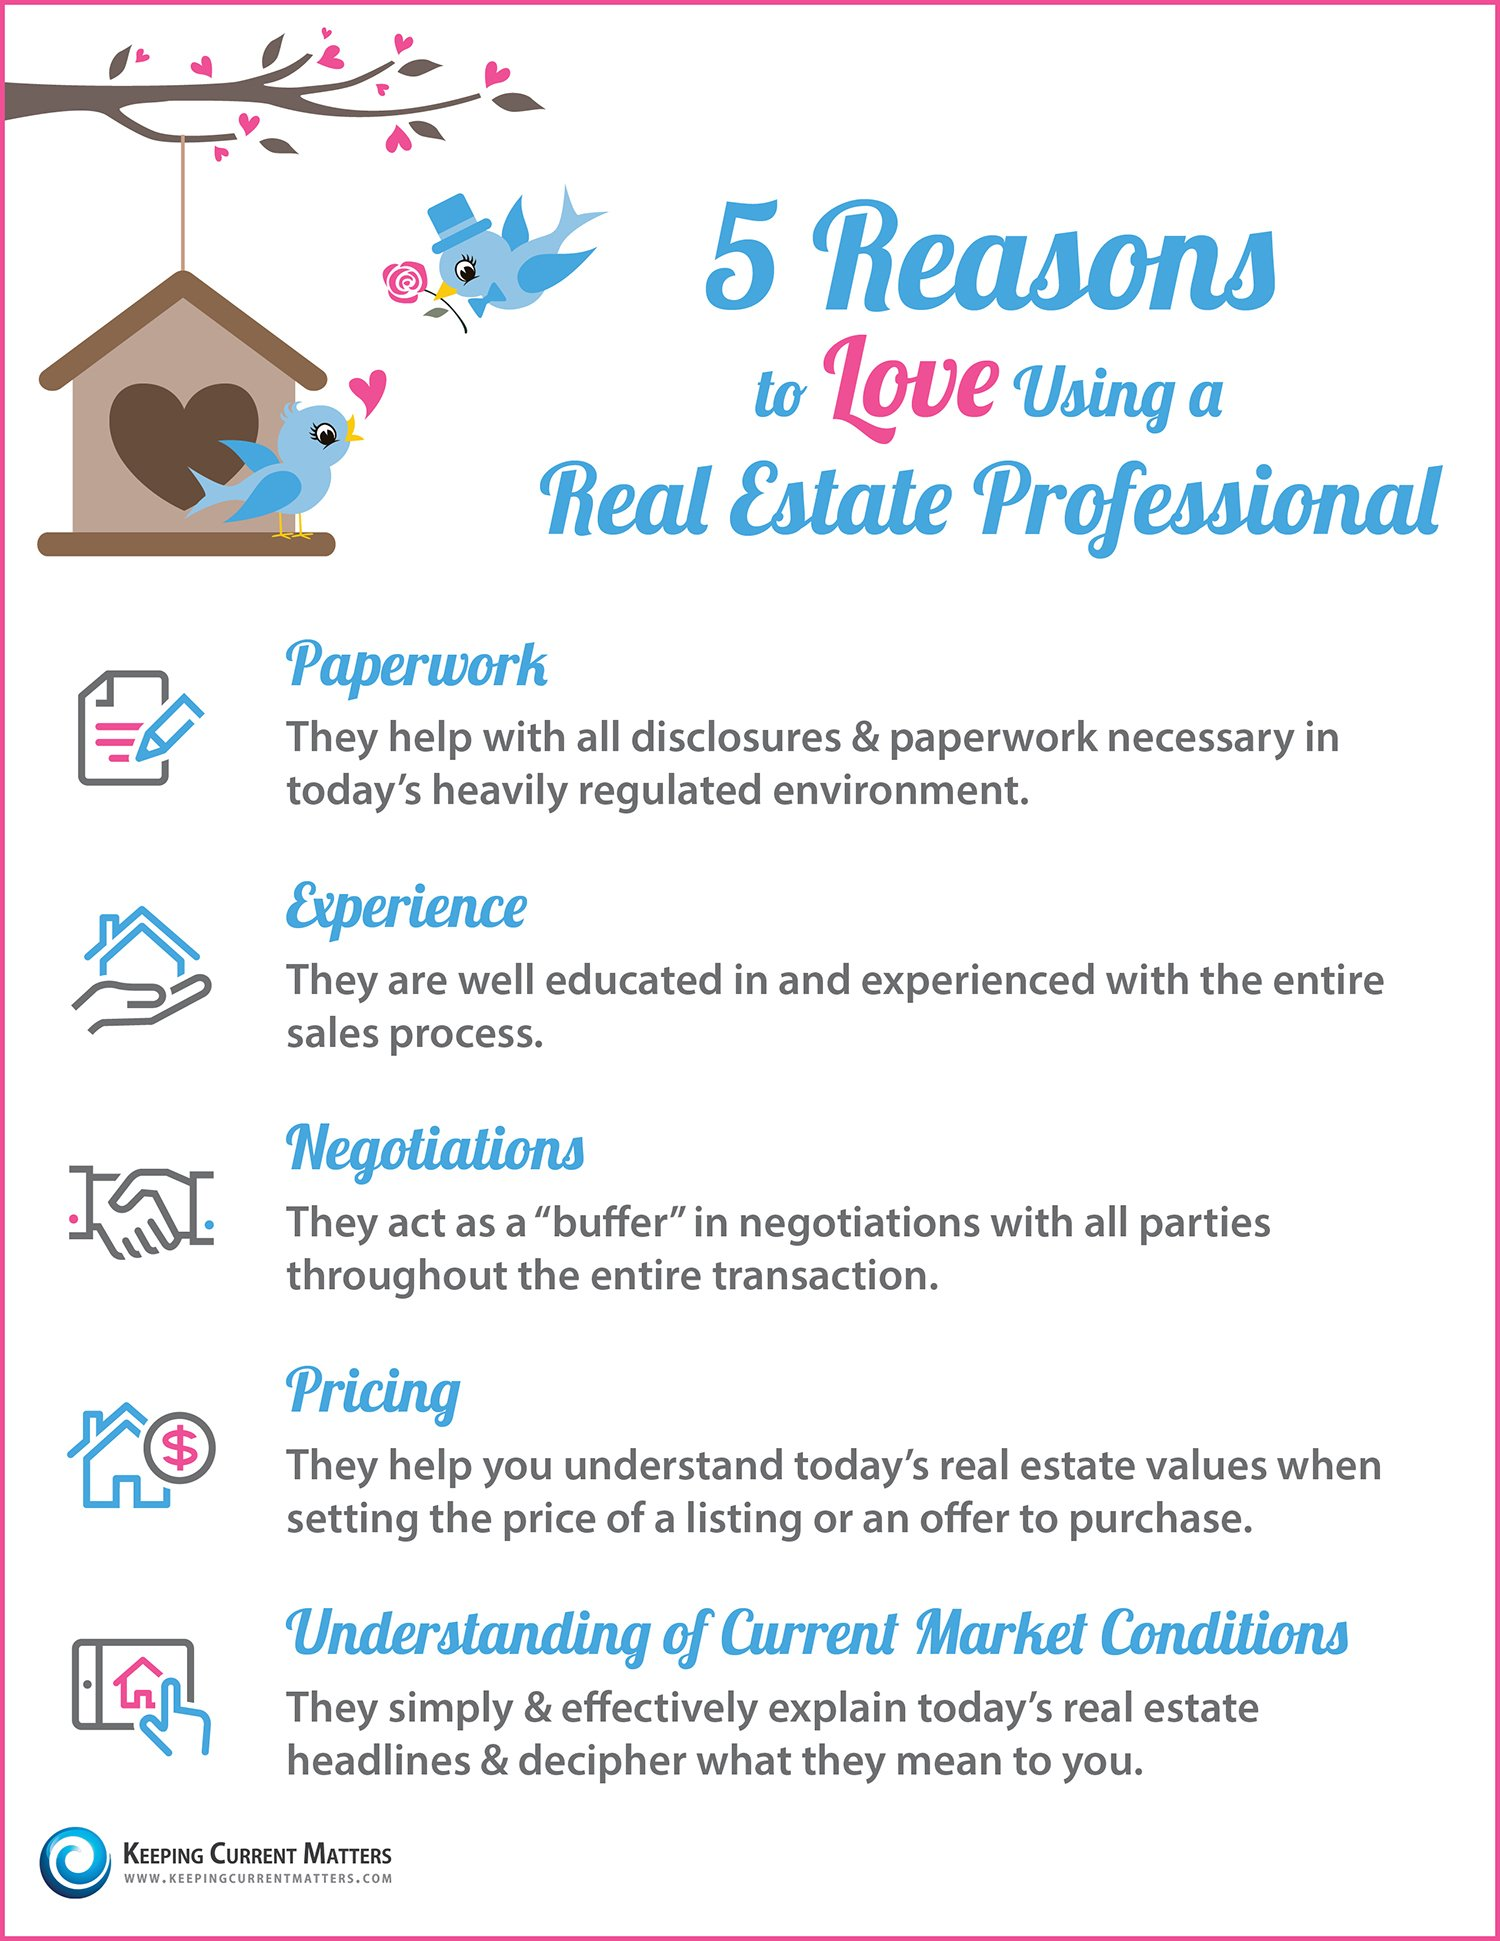 Five Reasons to Love Using a Real Estate Professional